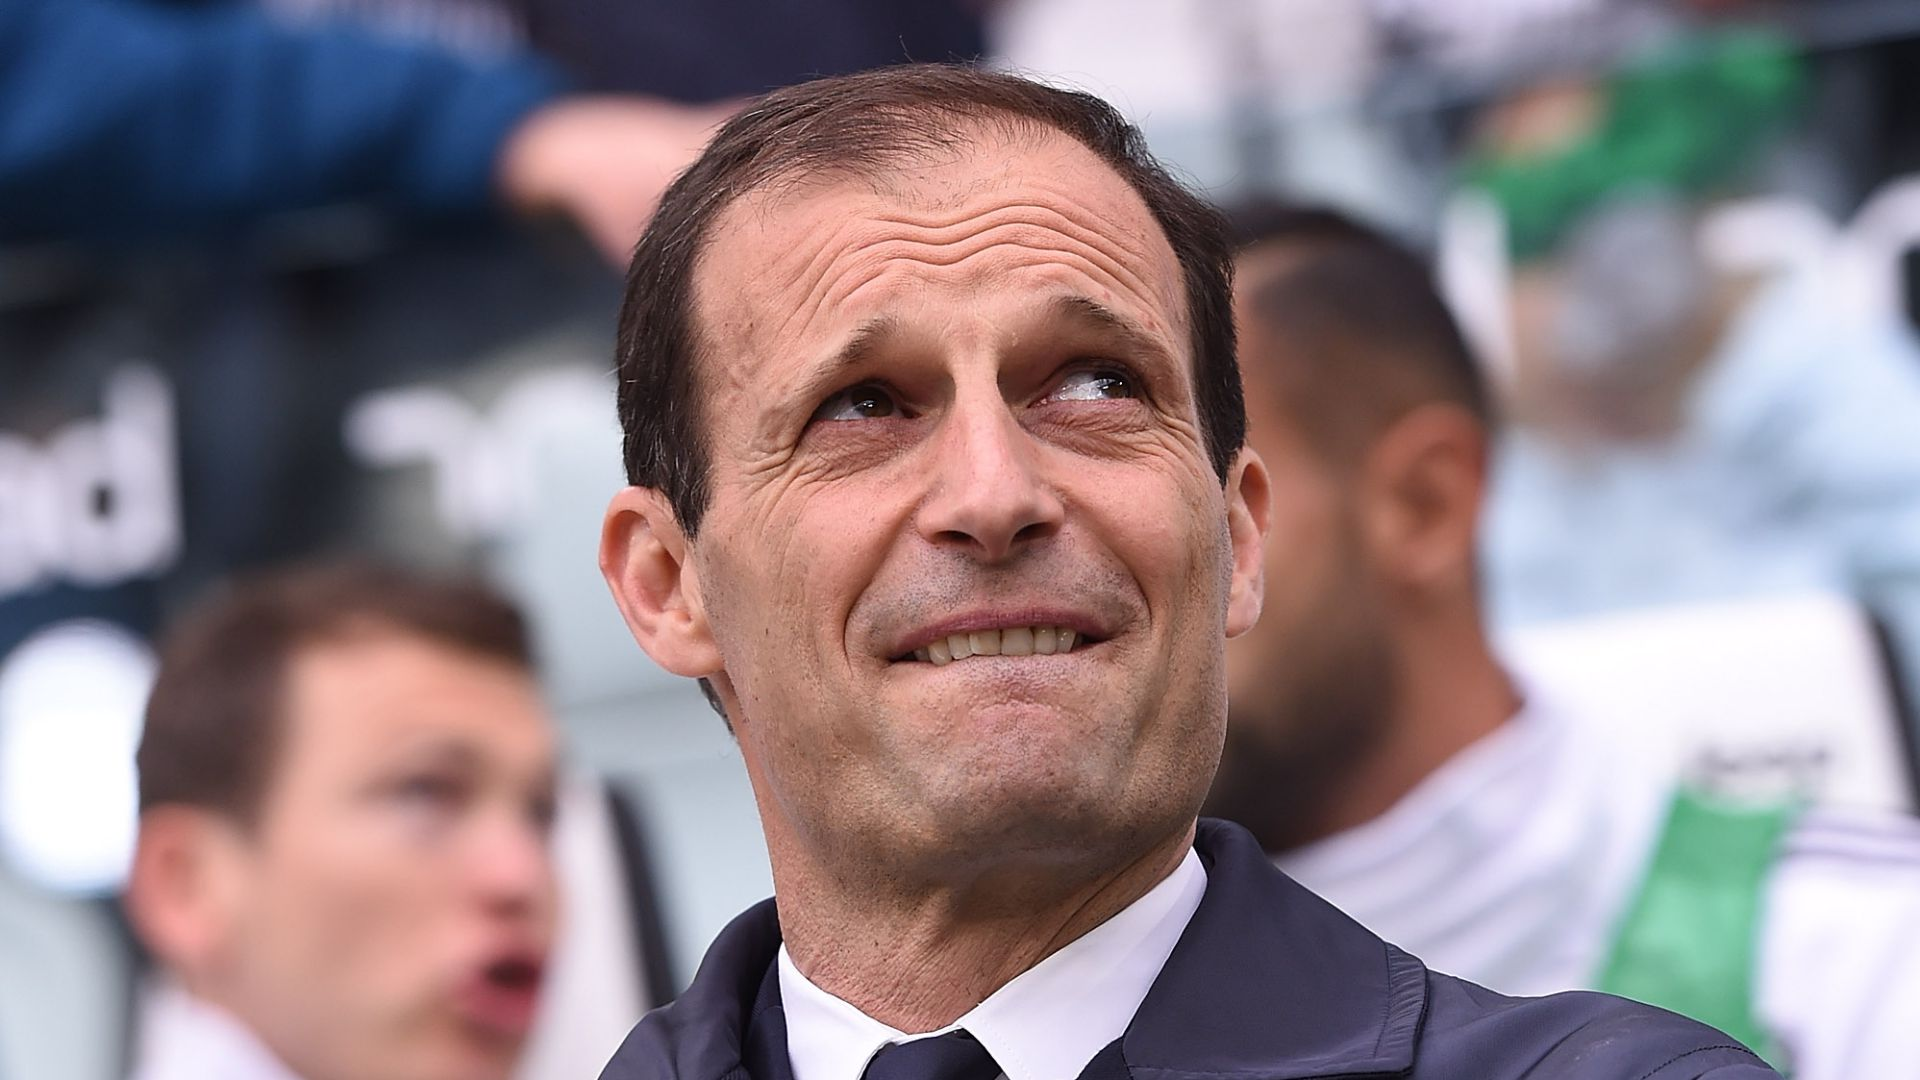 Verso Crotone-Juve, Allegri in conferenza: